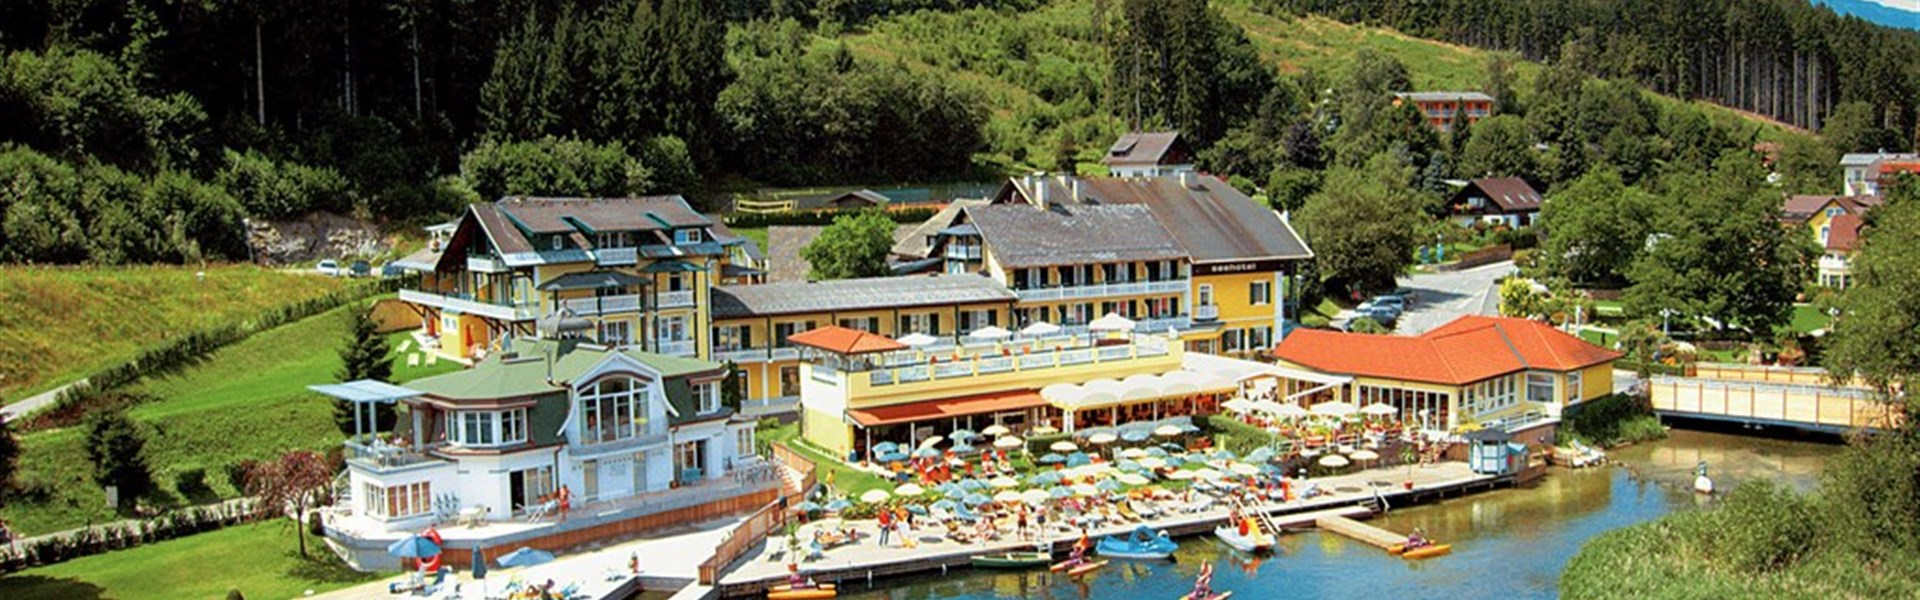 Marco Polo - Seehotel Steiner -